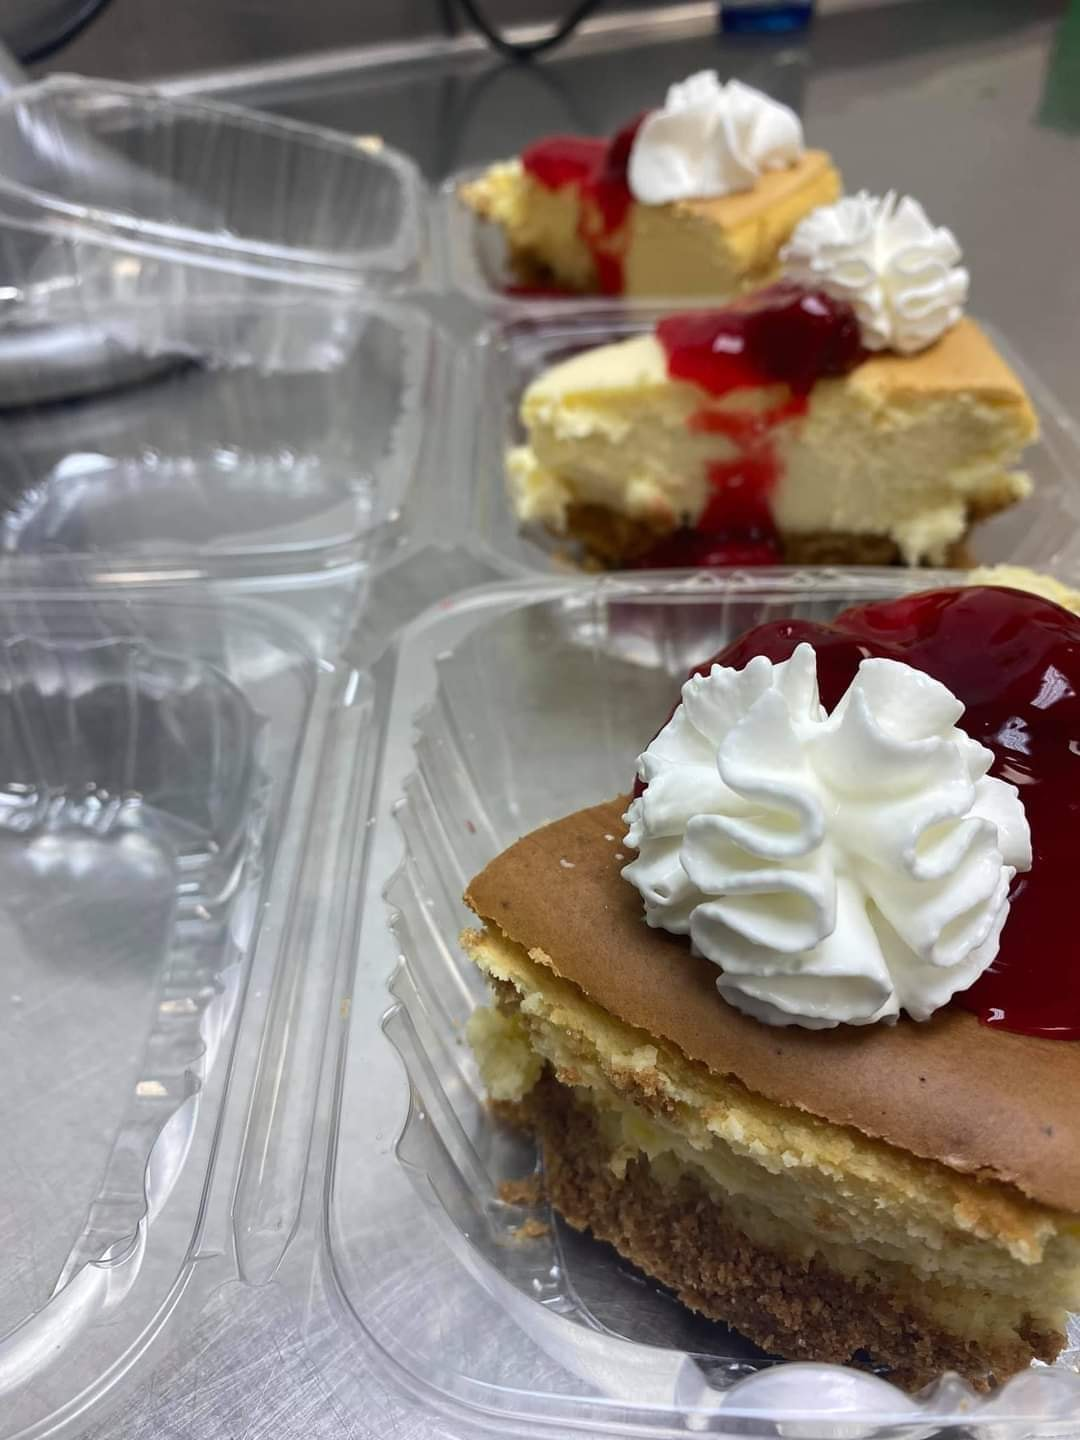 cheesecake in plastic to-go containers